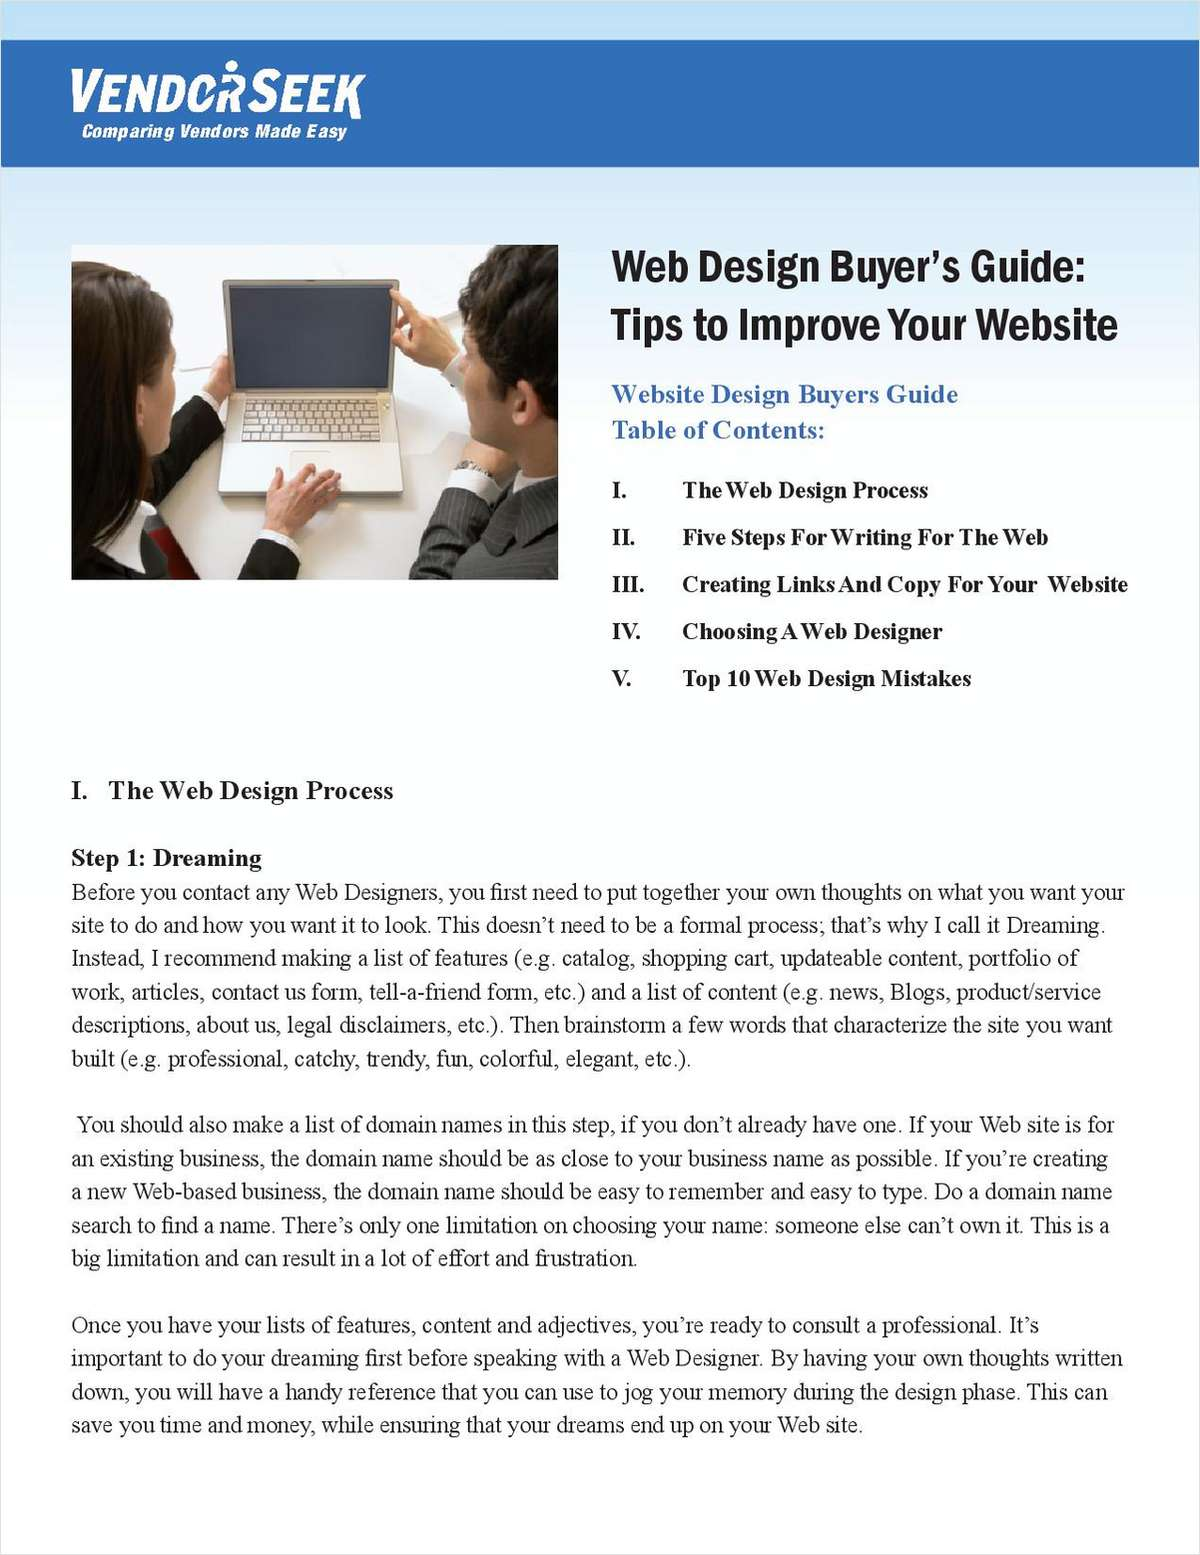 Tips to Improve Your Web Site Design